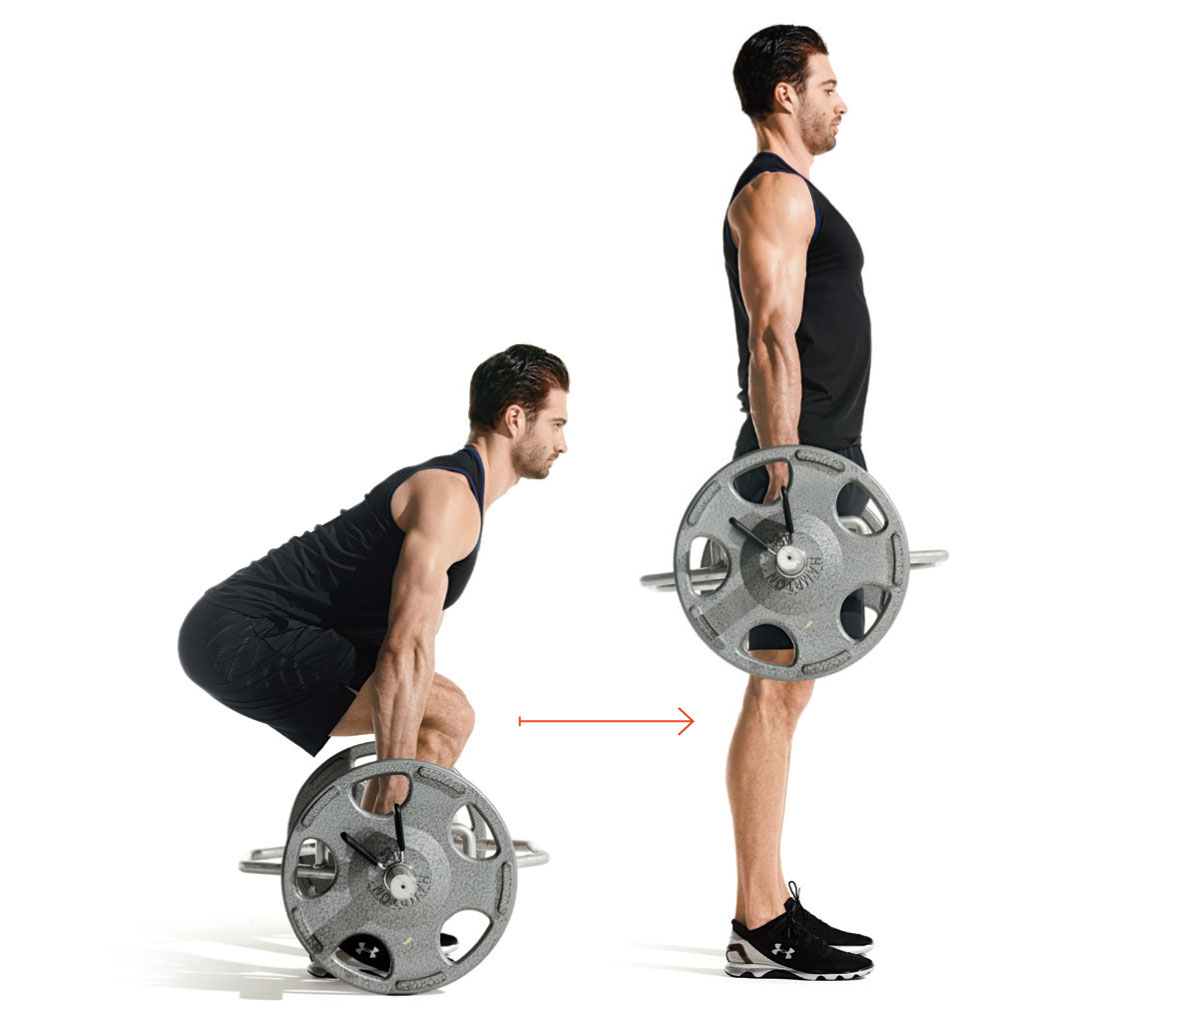 Will Deadlifts Build Muscle